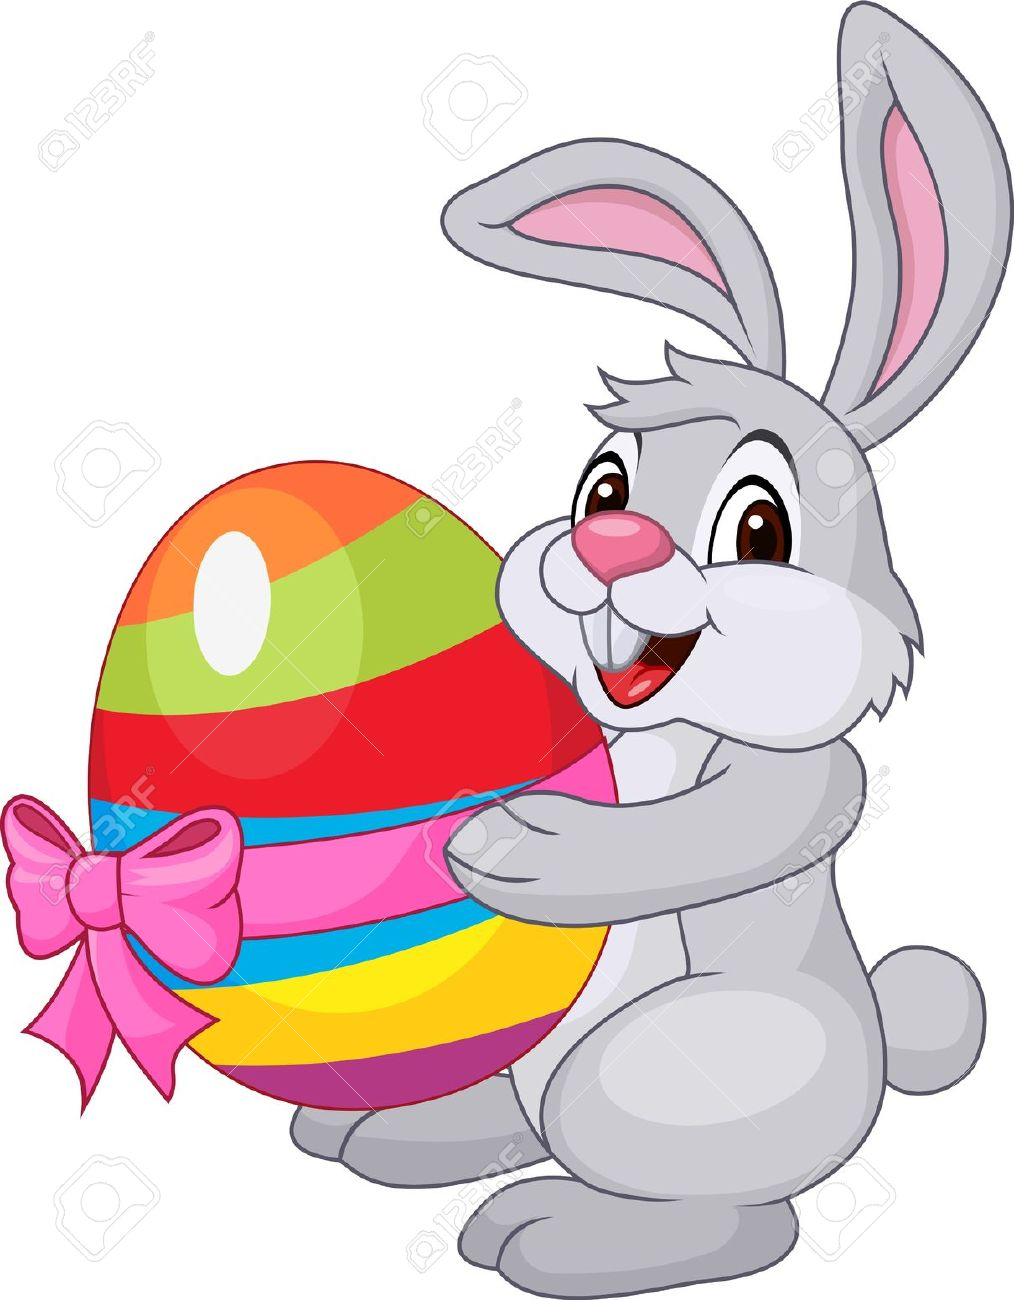 Clipart funny easter egg svg royalty free library Cute Rabbit With Easter Egg Royalty Free Cliparts, Vectors, And ... svg royalty free library